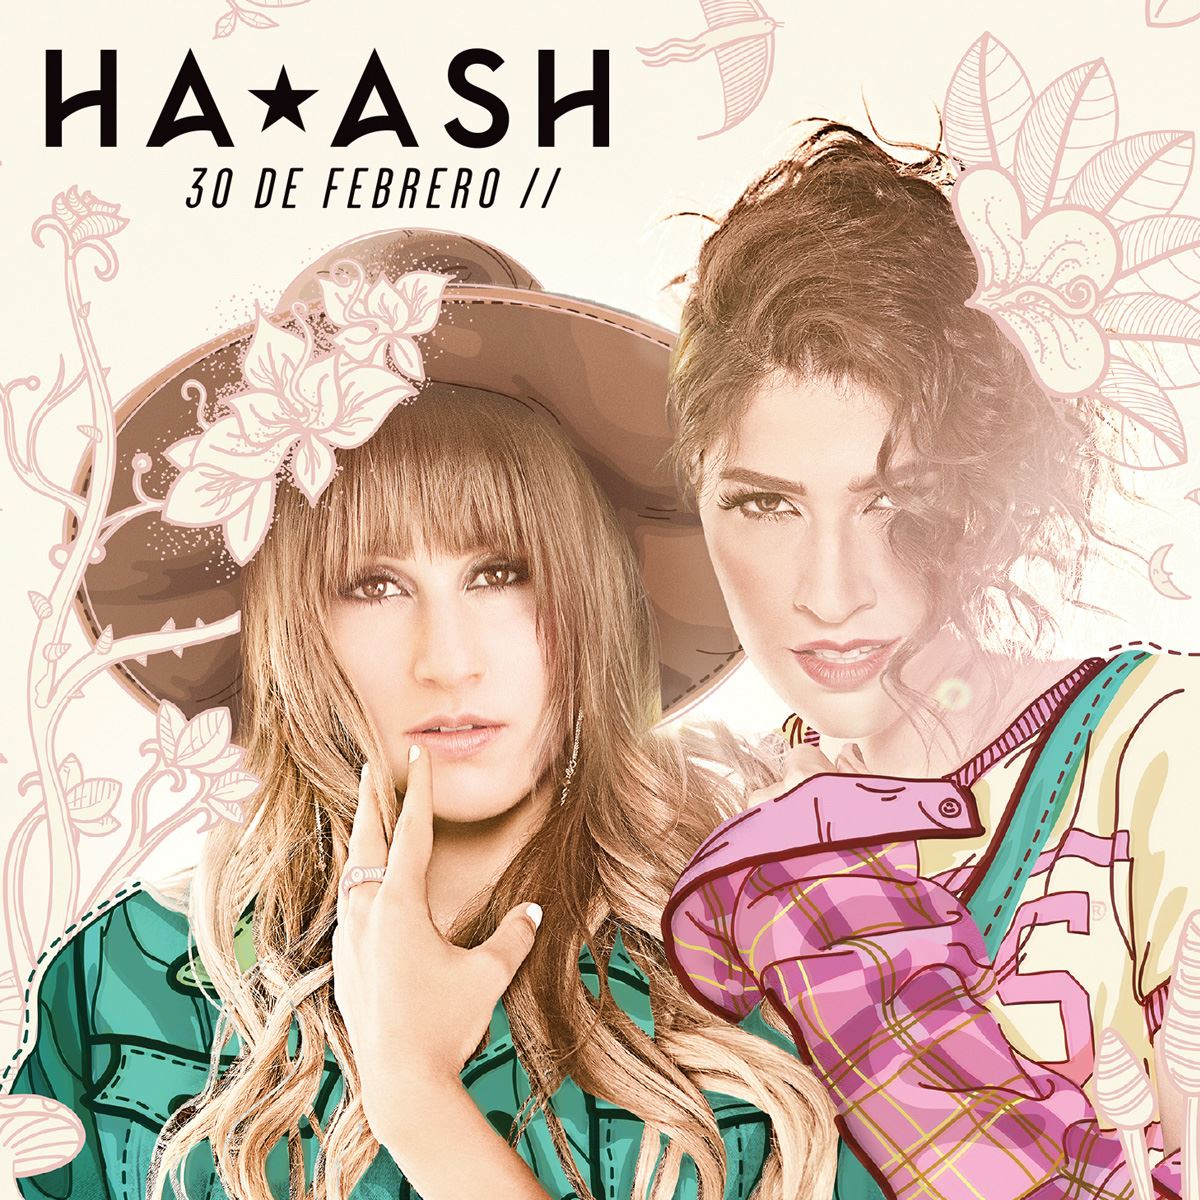 Cd/ dvd ha-ash